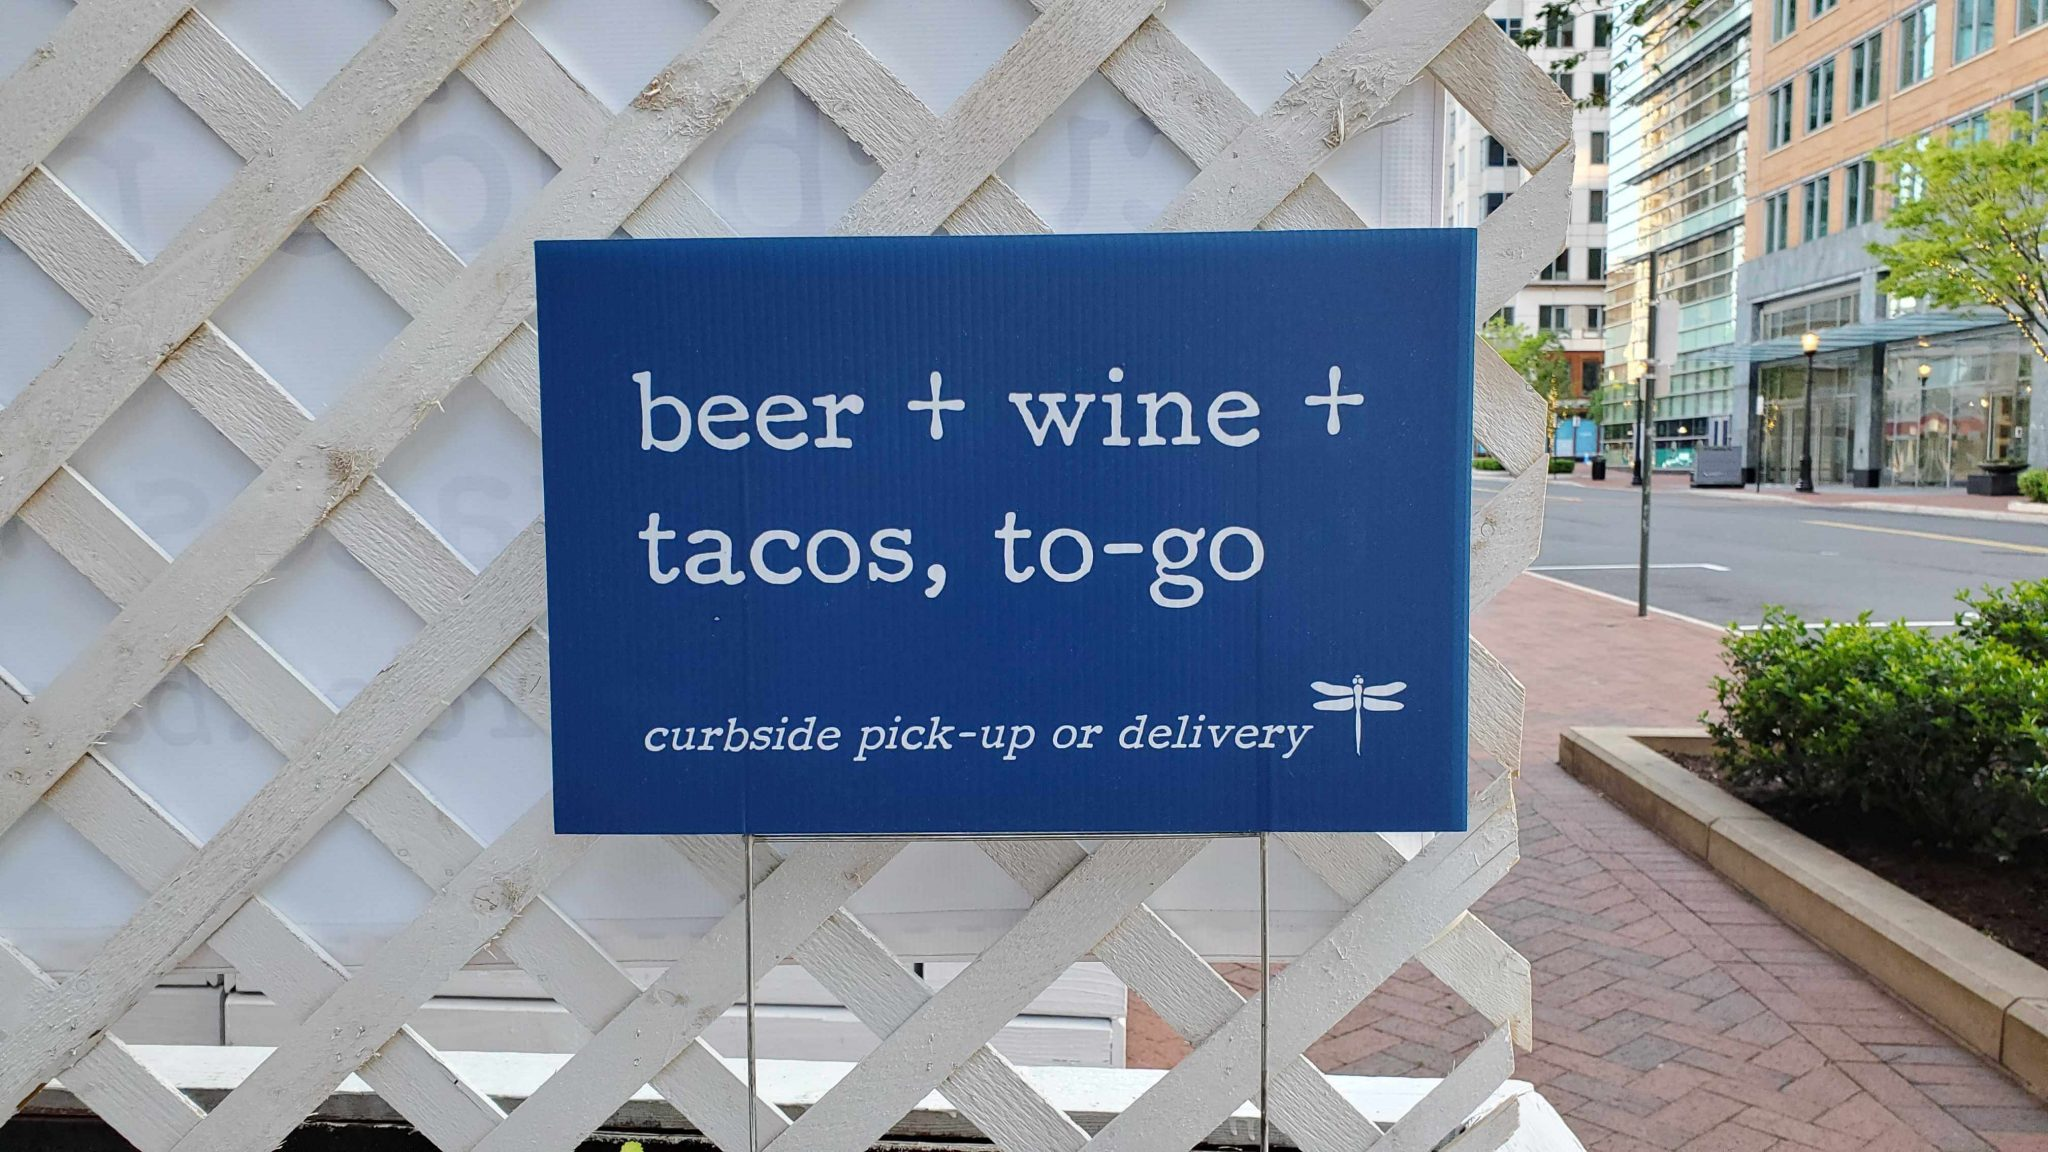 Restaurant signage directs customers on where to go for curbside pick up or delivery during COVID-19 when dining areas must remain closed.